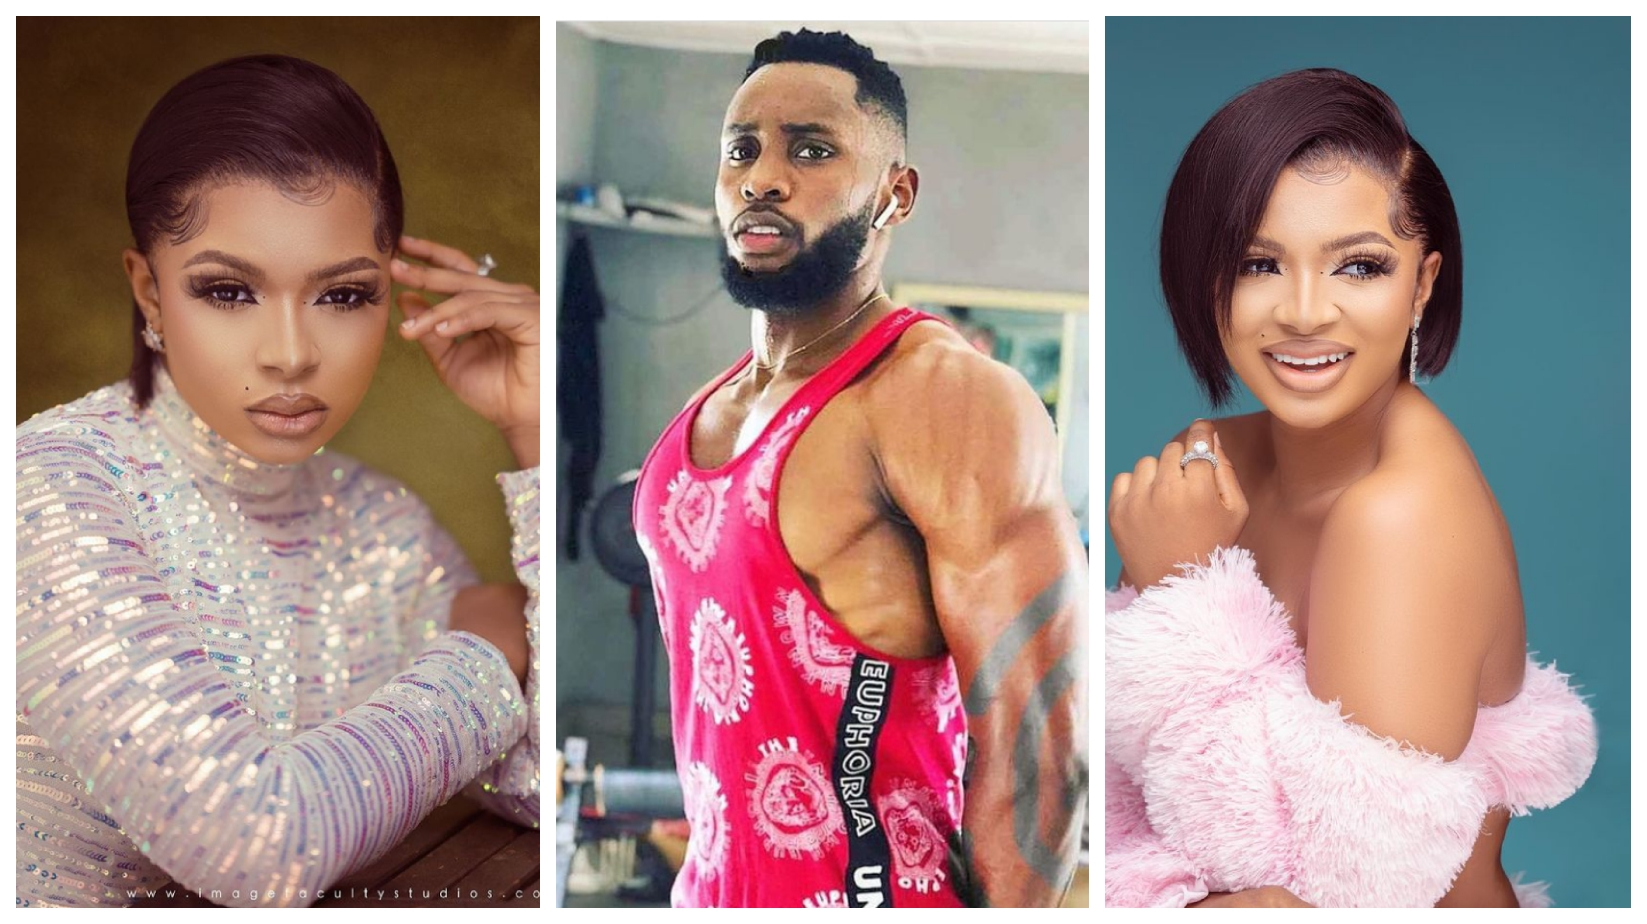 BBNaija: Emmanuel is 24 years and Liquorose is 26 years, do you think their relationship will work outside the house?Read this